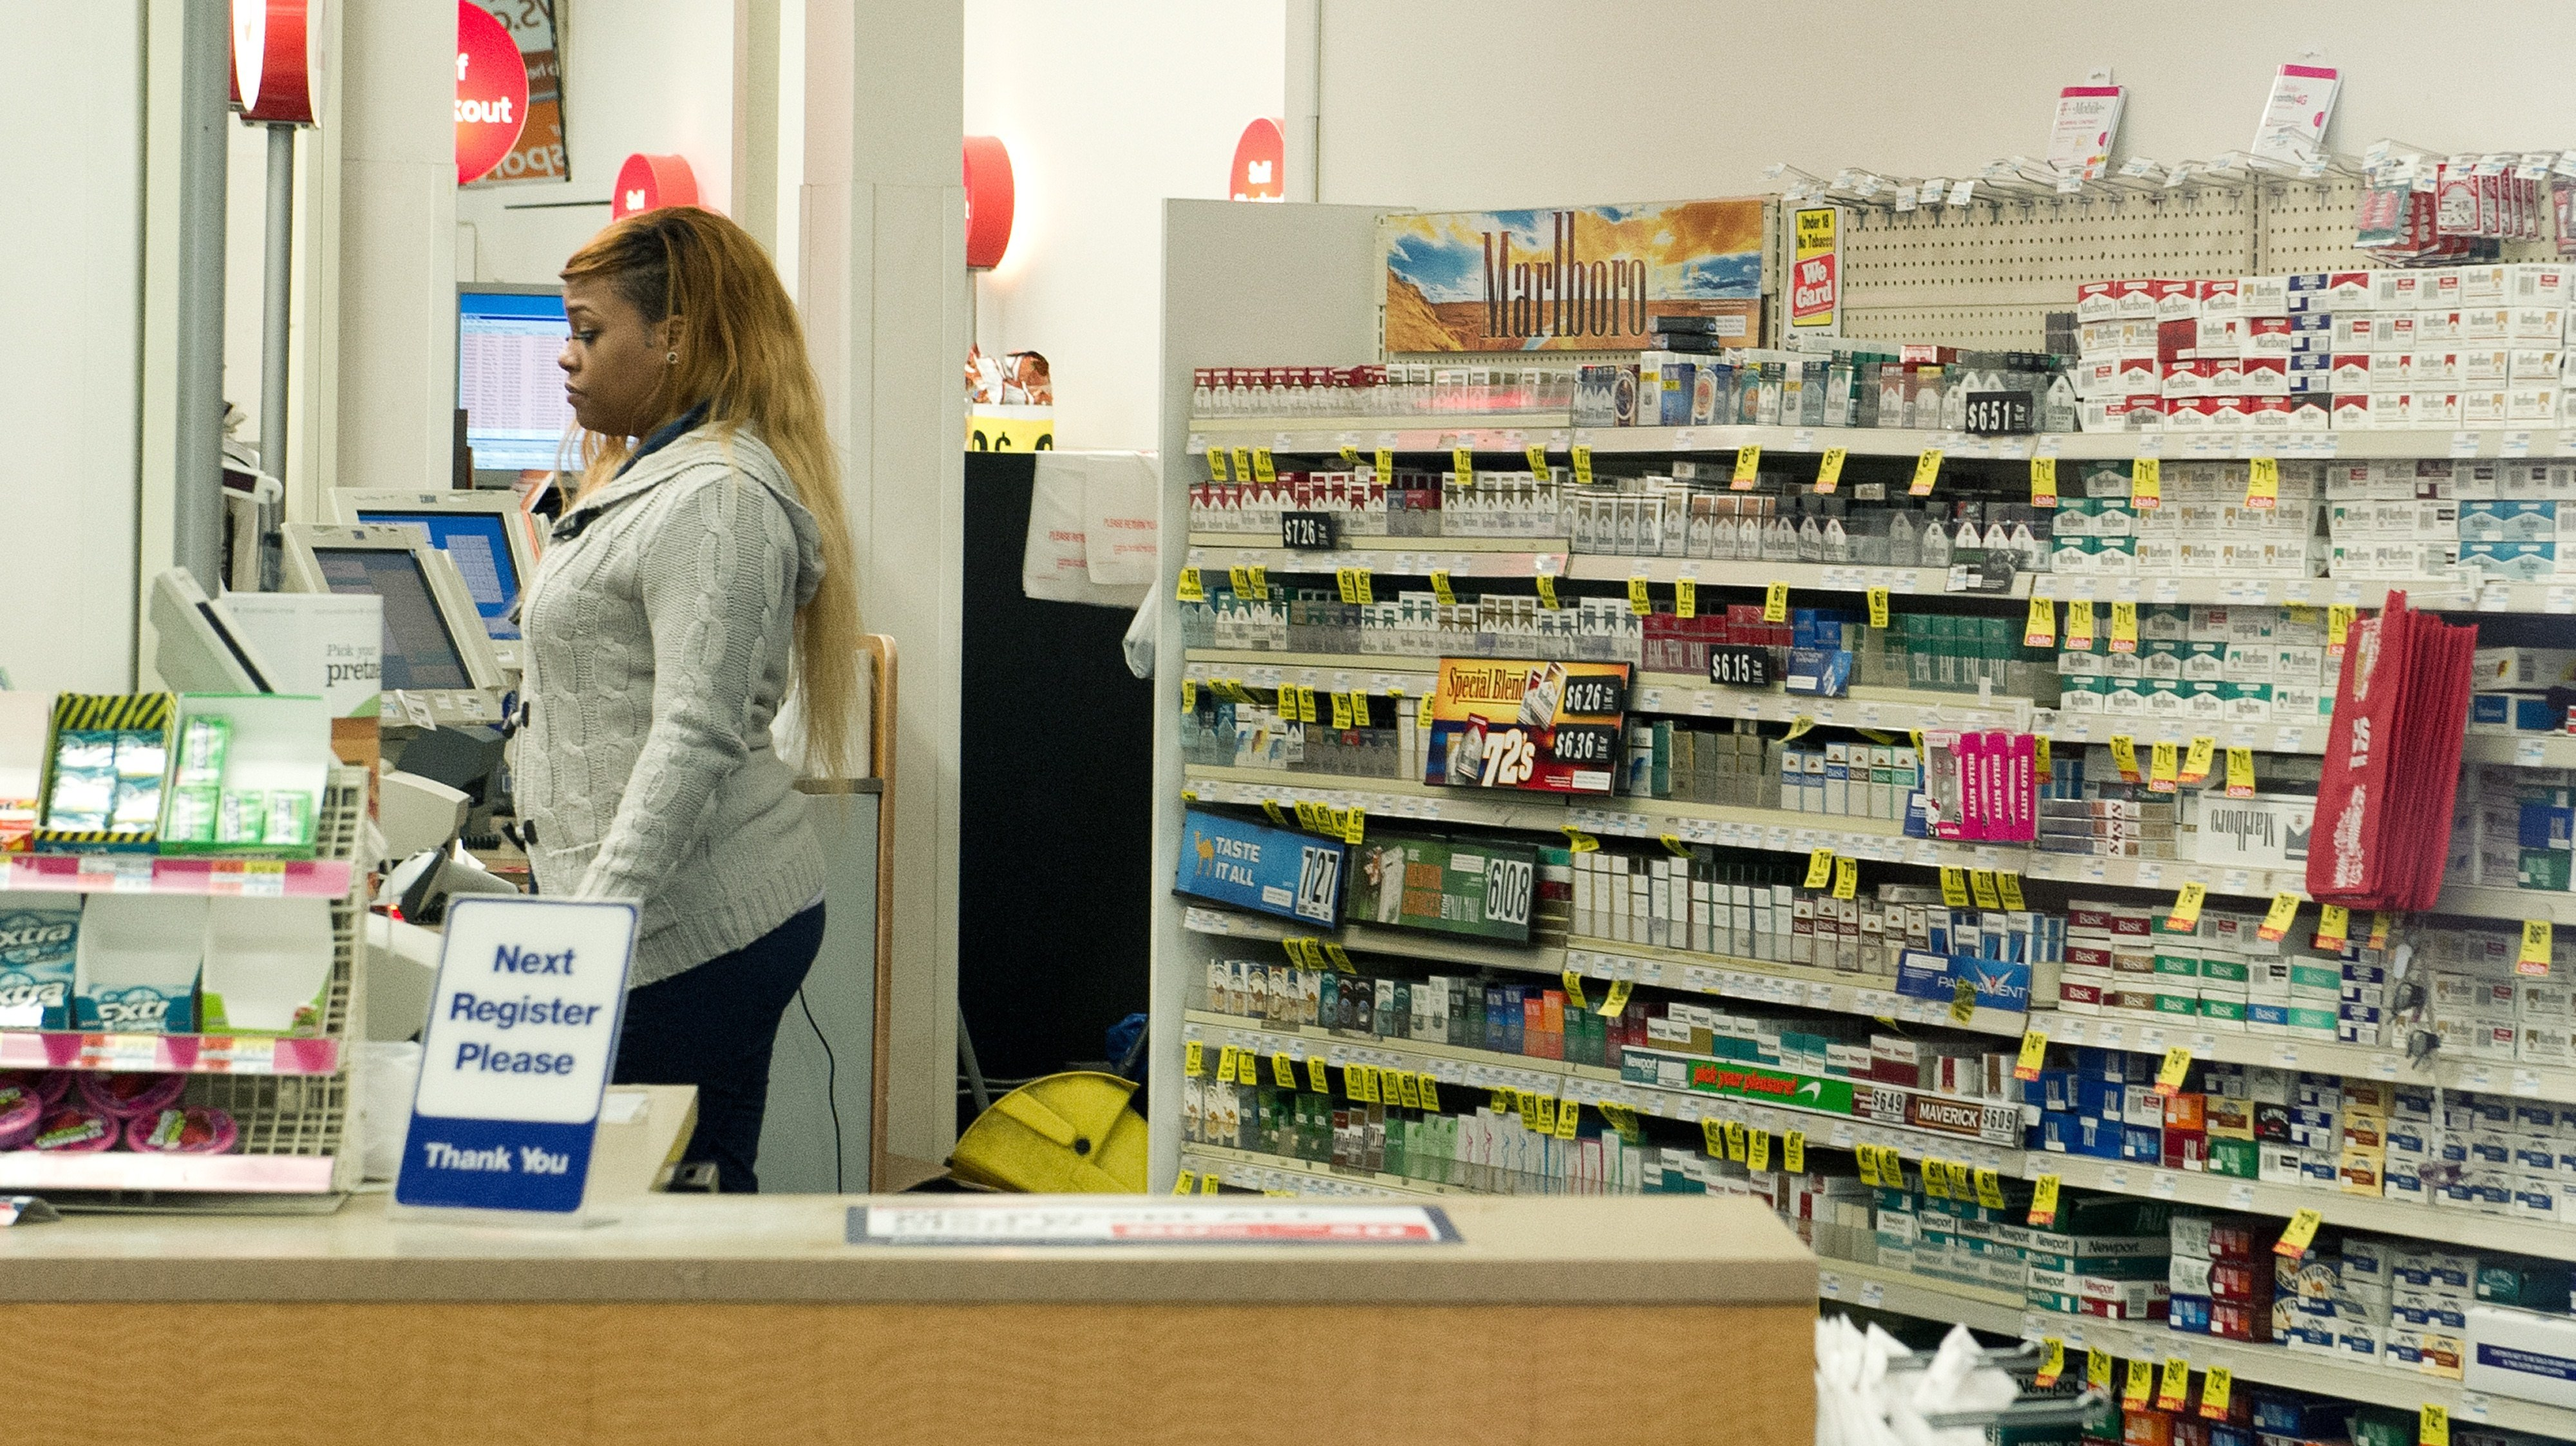 Attorneys General Ask Big Retailers To Pull Tobacco From Stores